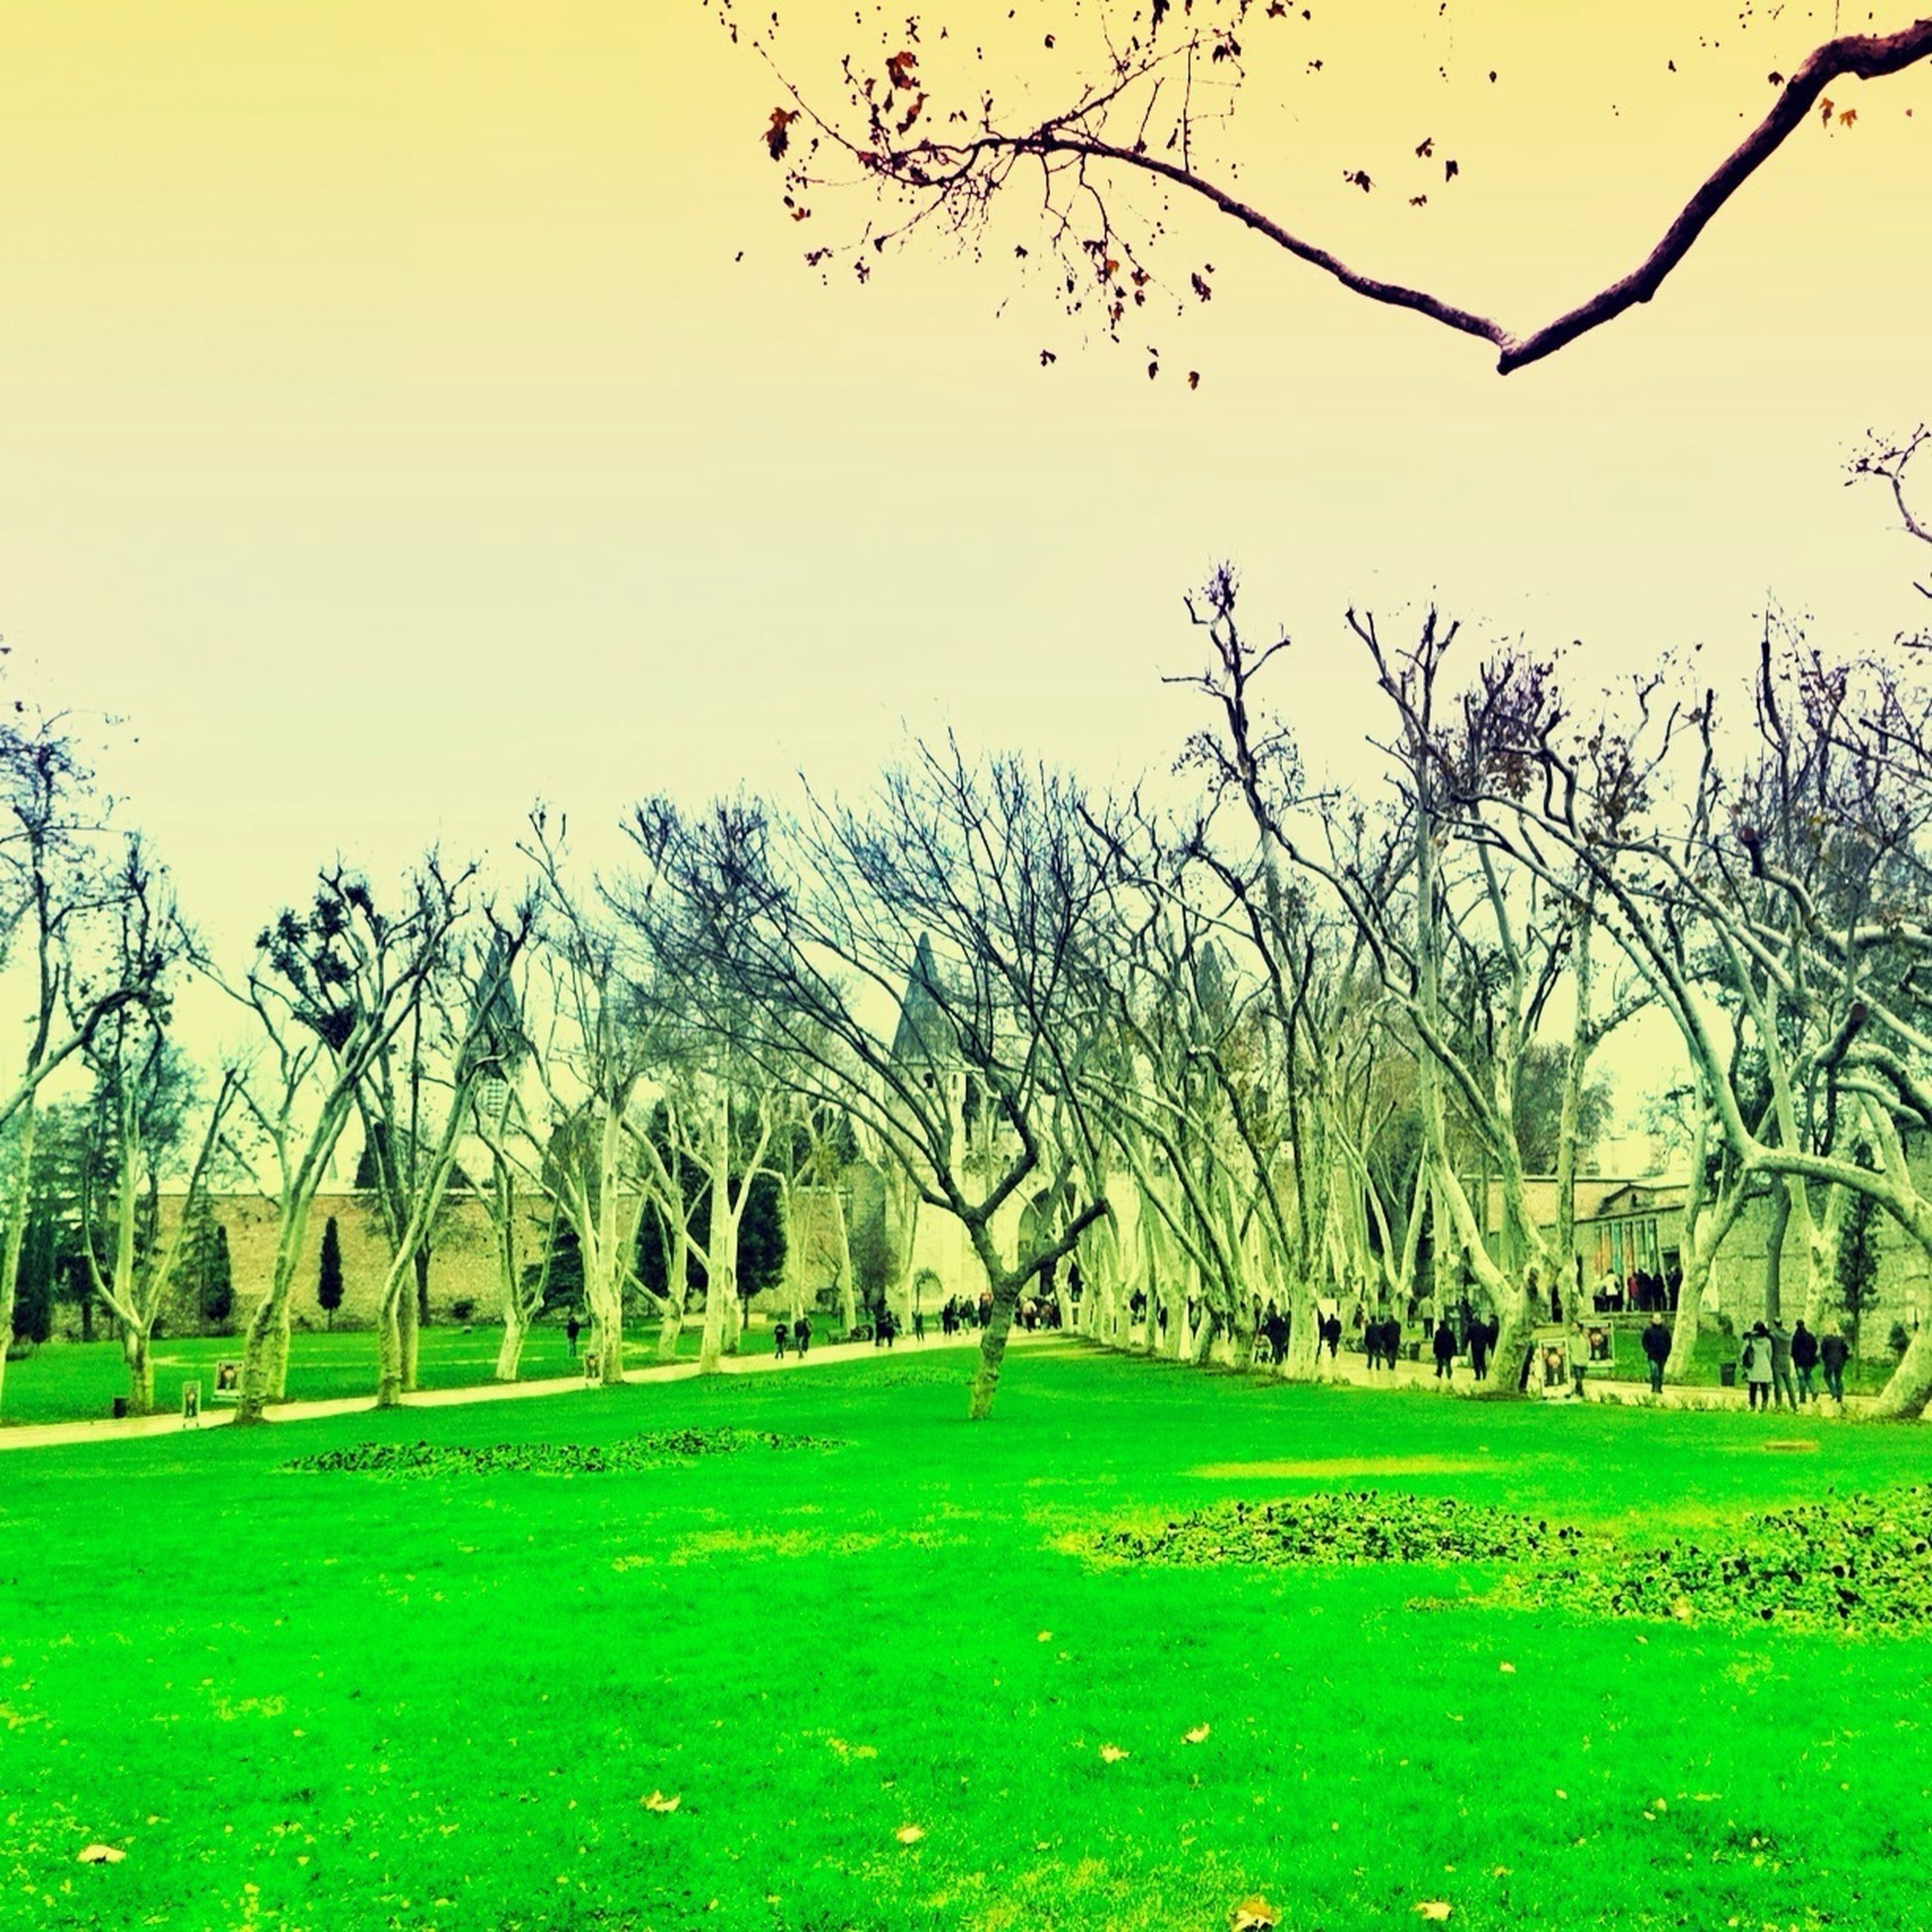 tree, grass, tranquil scene, tranquility, landscape, green color, clear sky, scenics, field, branch, nature, beauty in nature, bare tree, grassy, growth, tree trunk, park - man made space, sky, outdoors, idyllic